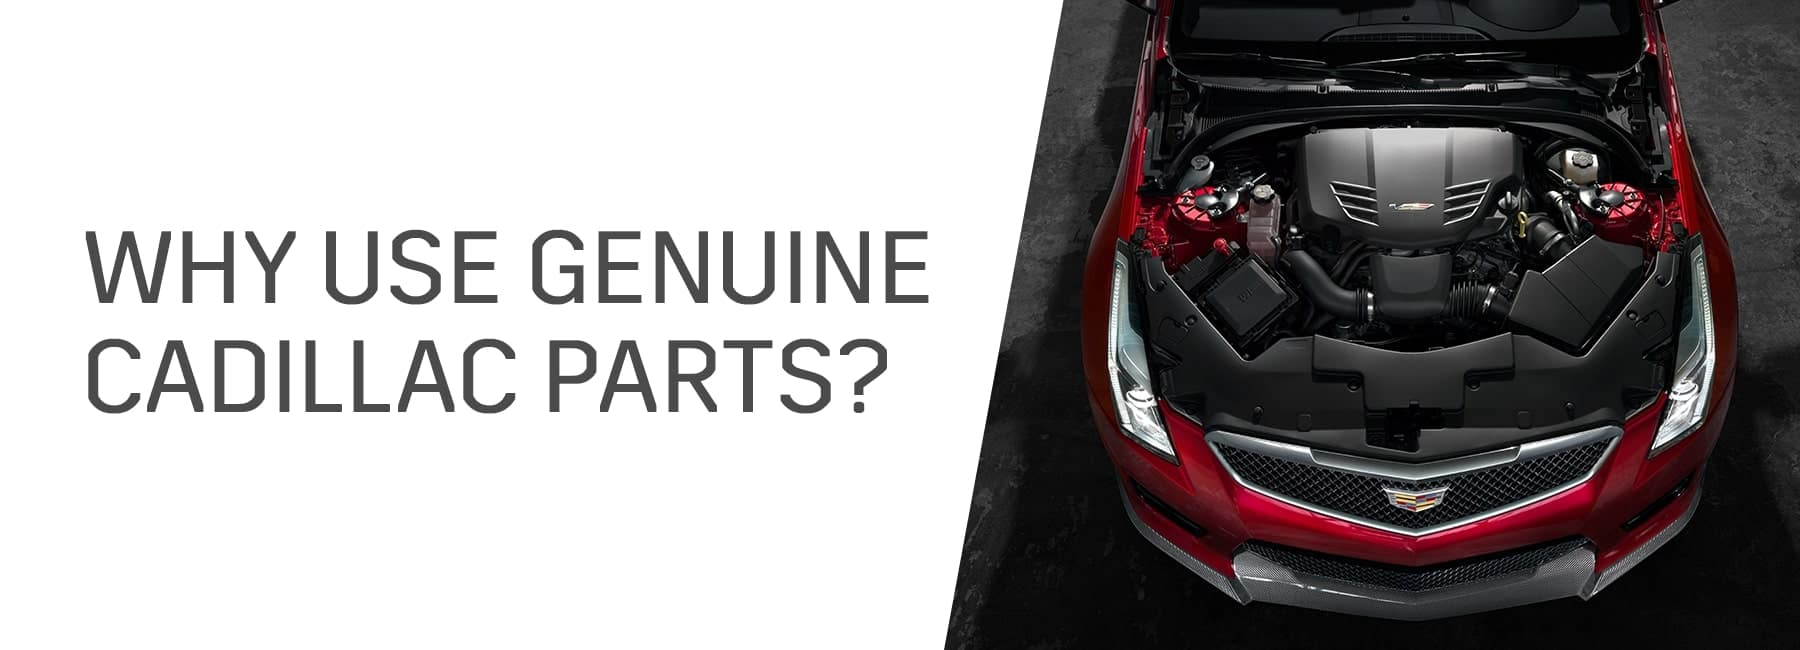 Why Use Genuine Cadillac parts?